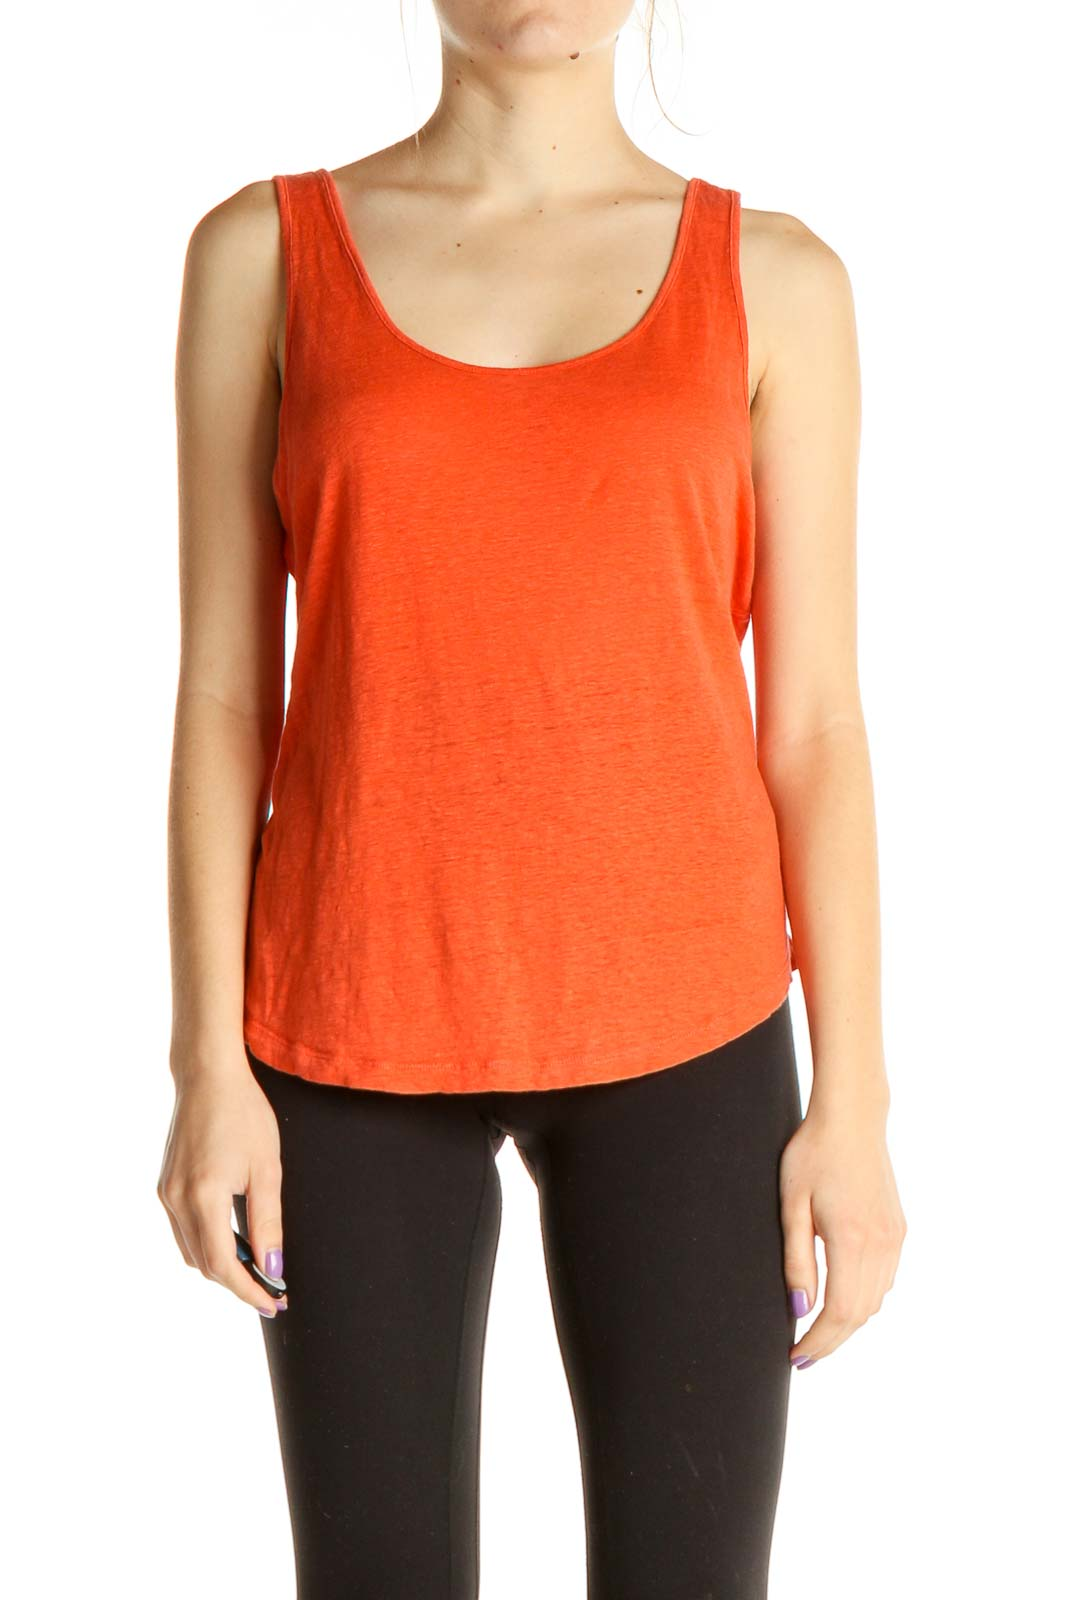 Orange Solid Casual Tank Top Front